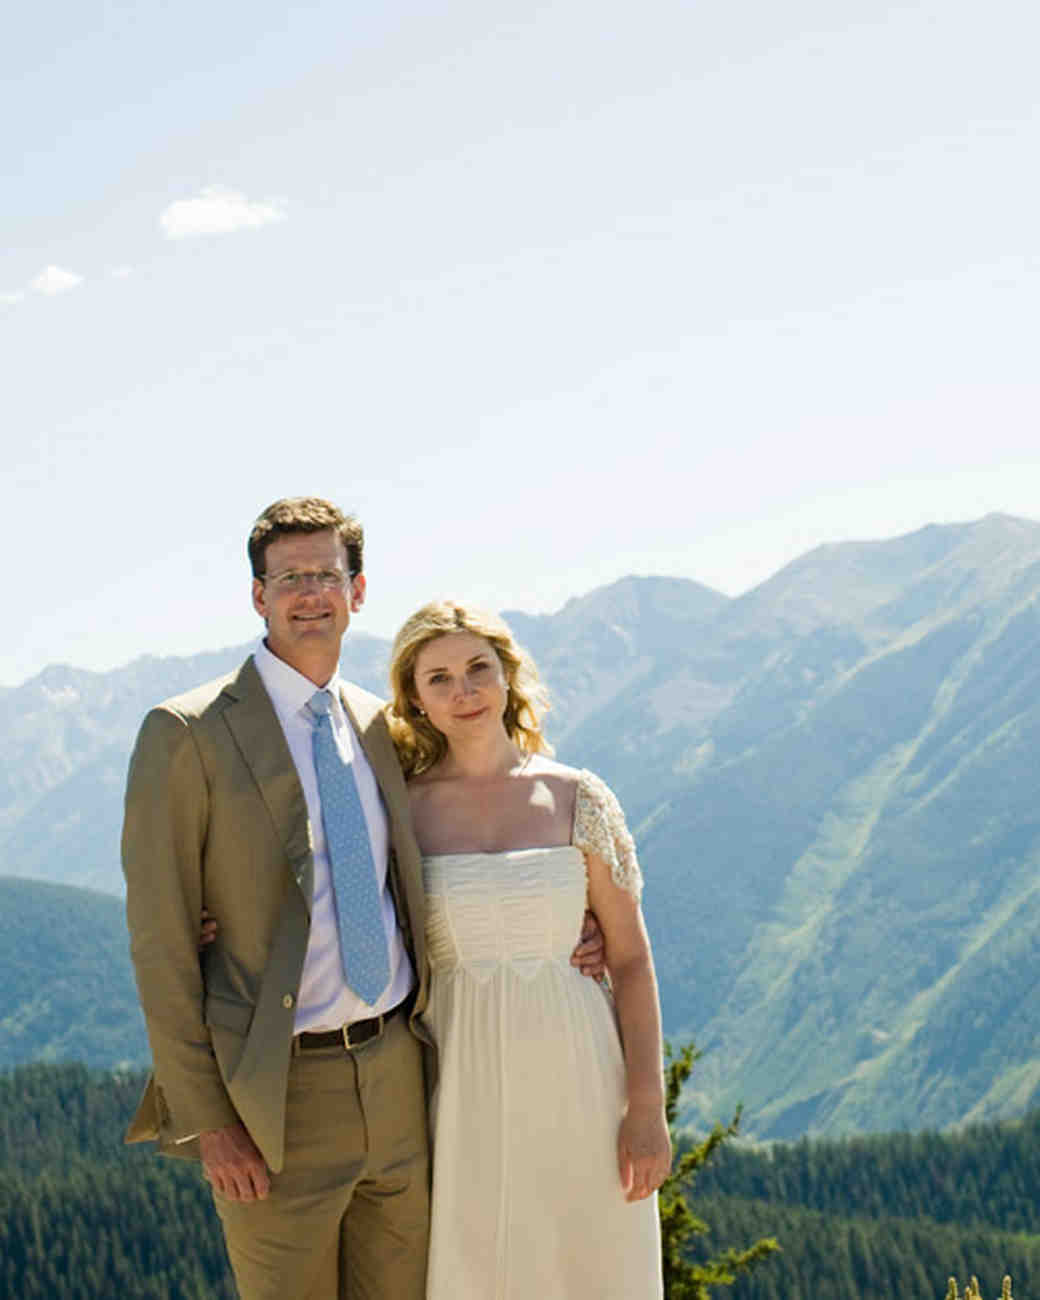 A Romantic Rocky Mountain Destination Wedding | Martha Stewart Weddings